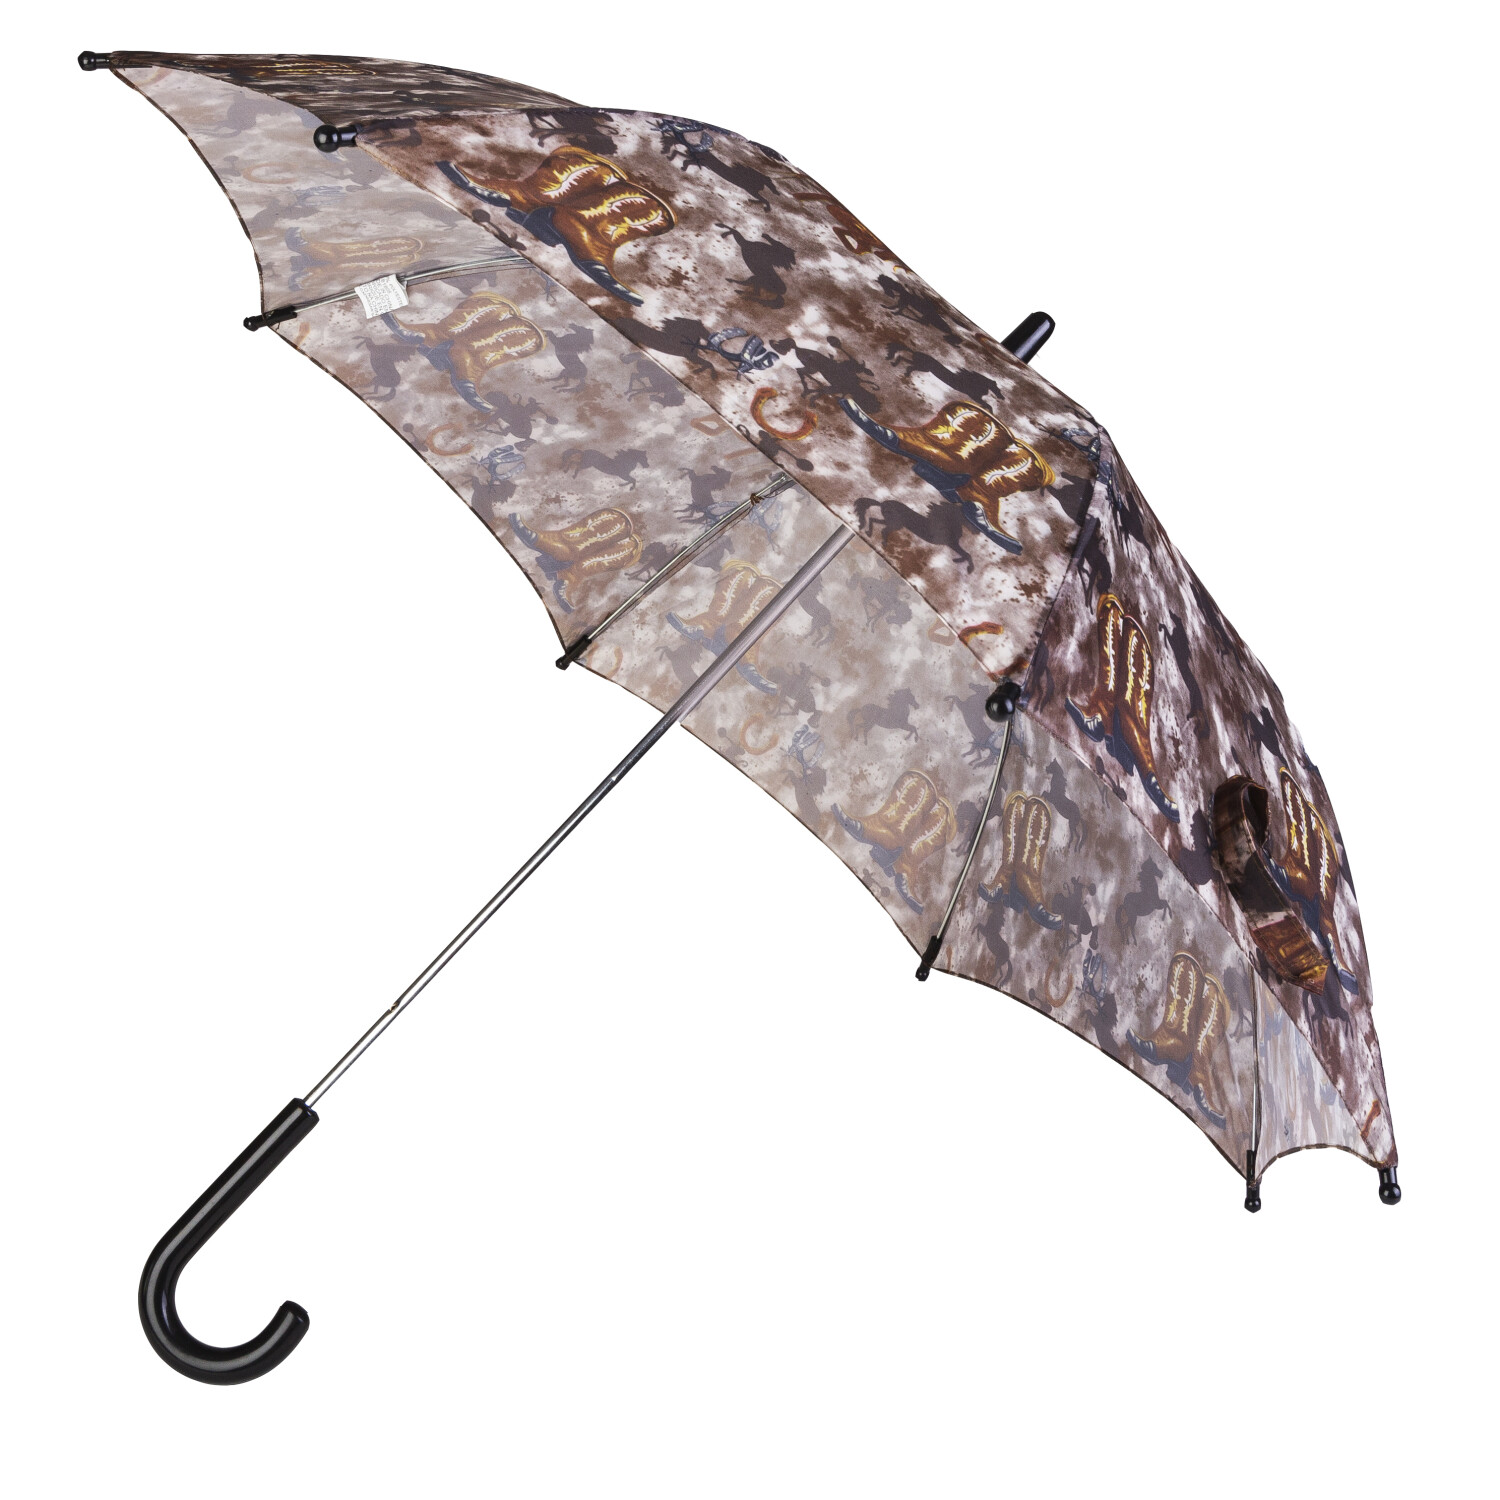 Rainstoppers Boys 32 inch Umbrella Western Boots Saddle and Camouflage Print